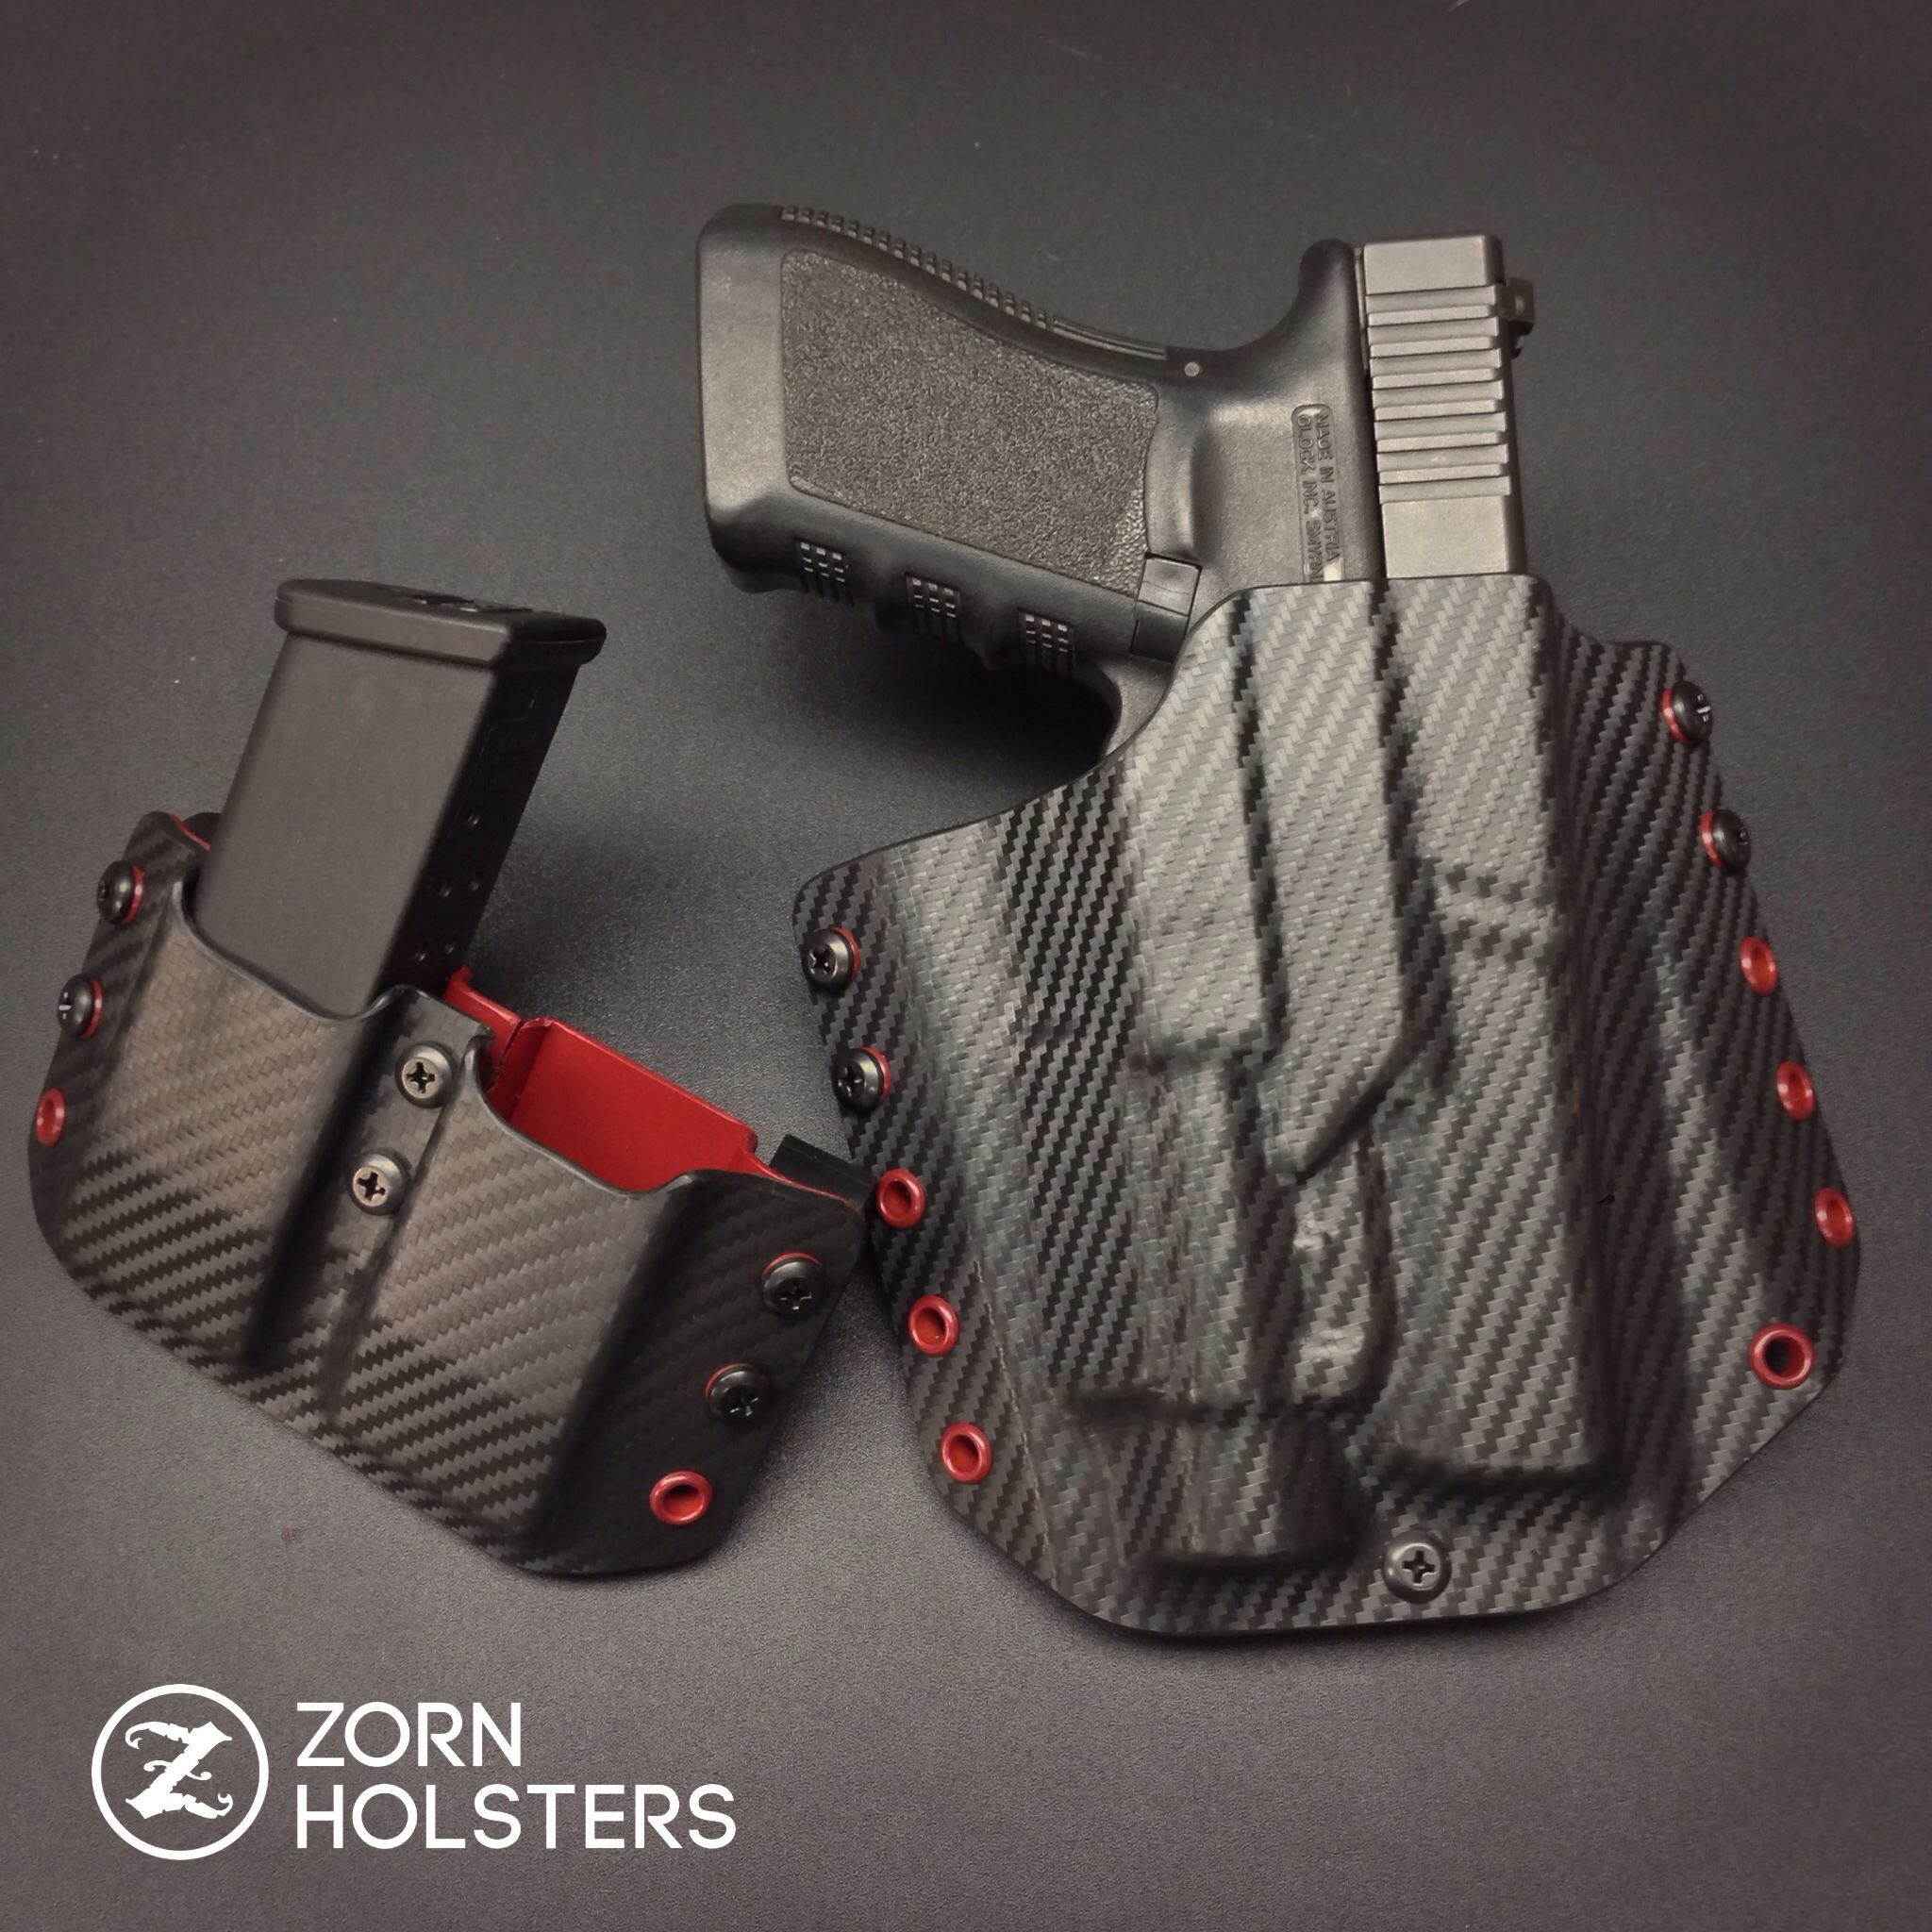 Double Magazine And Handcuff Holder Glock 41 Trojan with a Streamlight TLR 41 and double magazine pouch 14